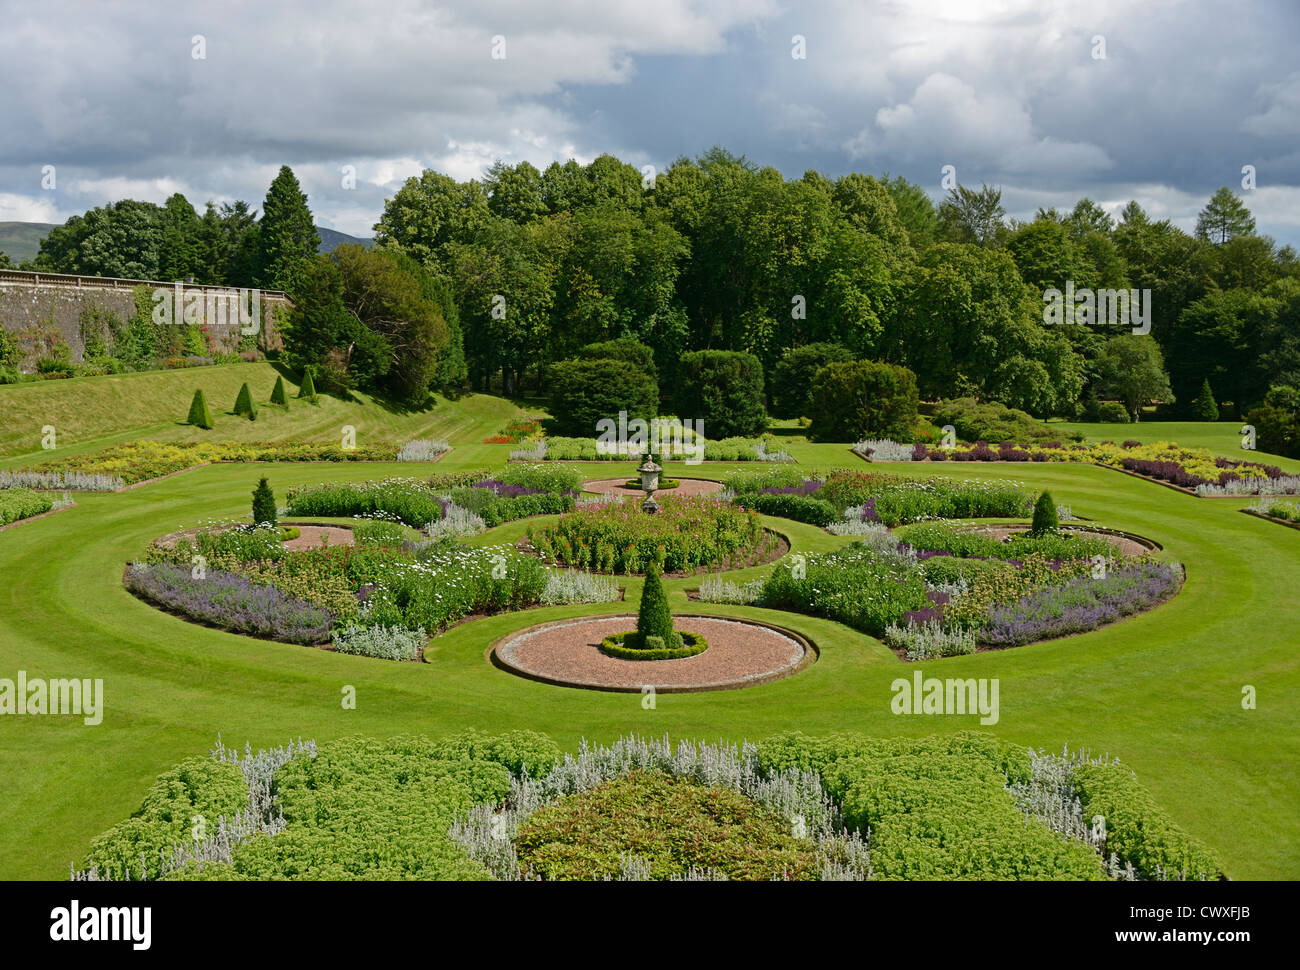 drumlanrig-castle-garden-queensberry-estate-dumfries-and-galloway-CWXFJB.jpg